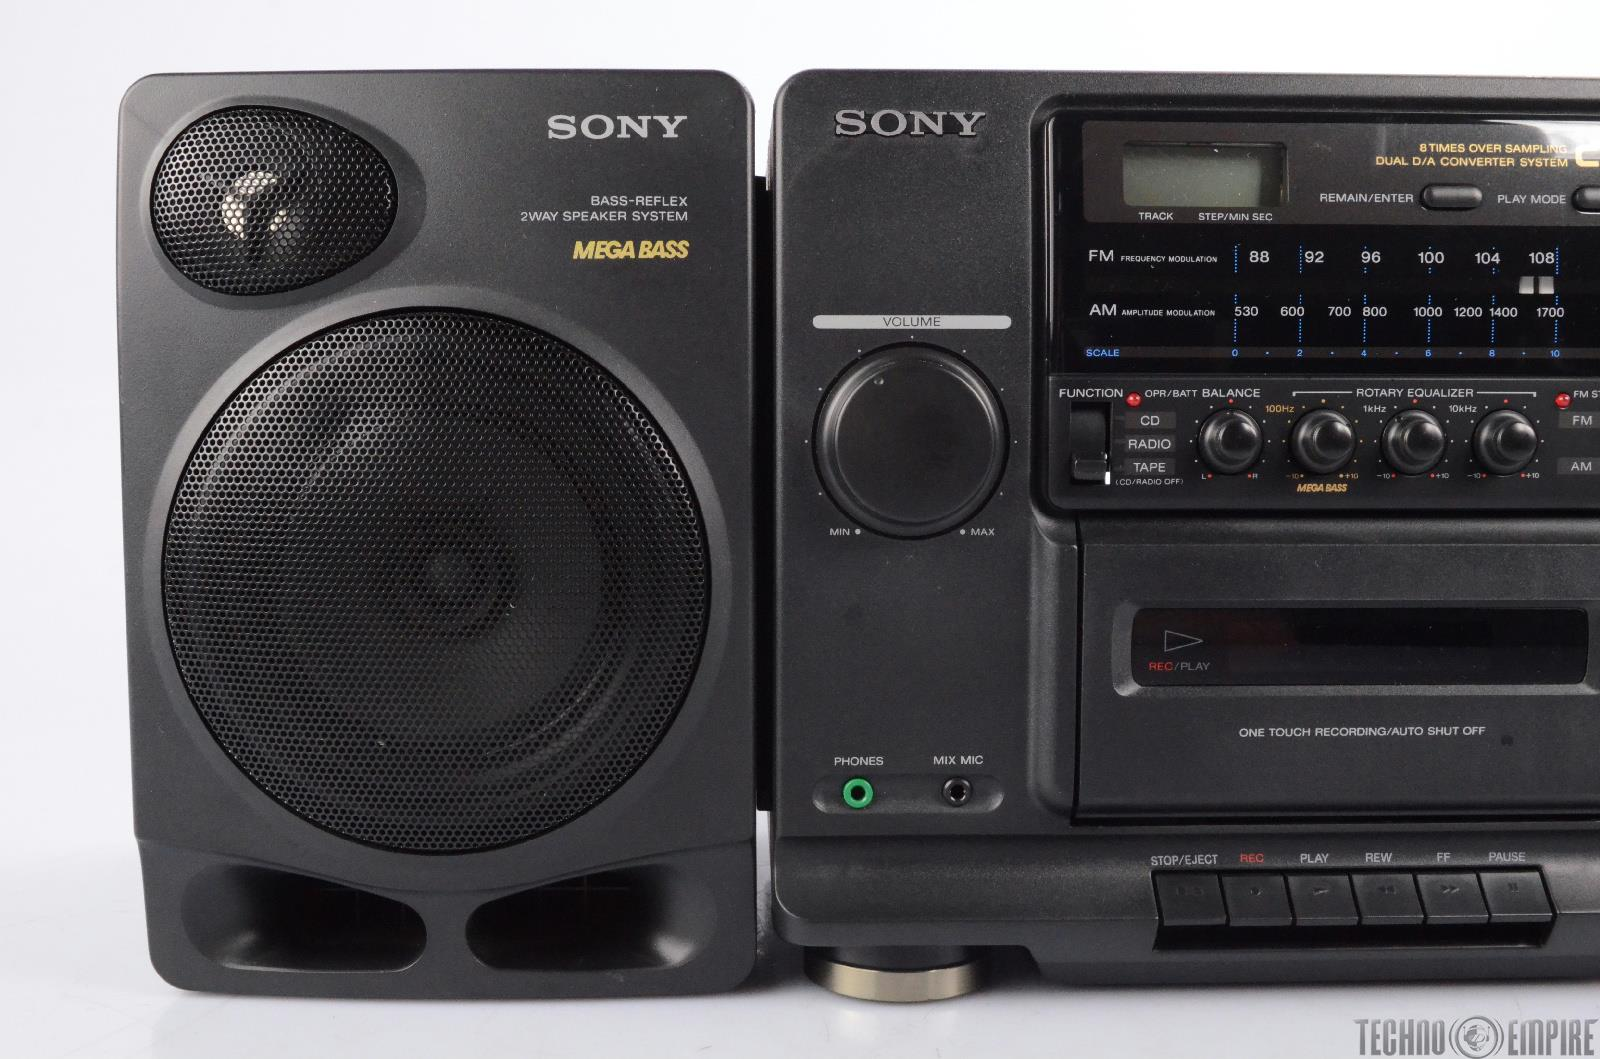 sony cfd 510 boom box stereo cd player radio mega bass w. Black Bedroom Furniture Sets. Home Design Ideas